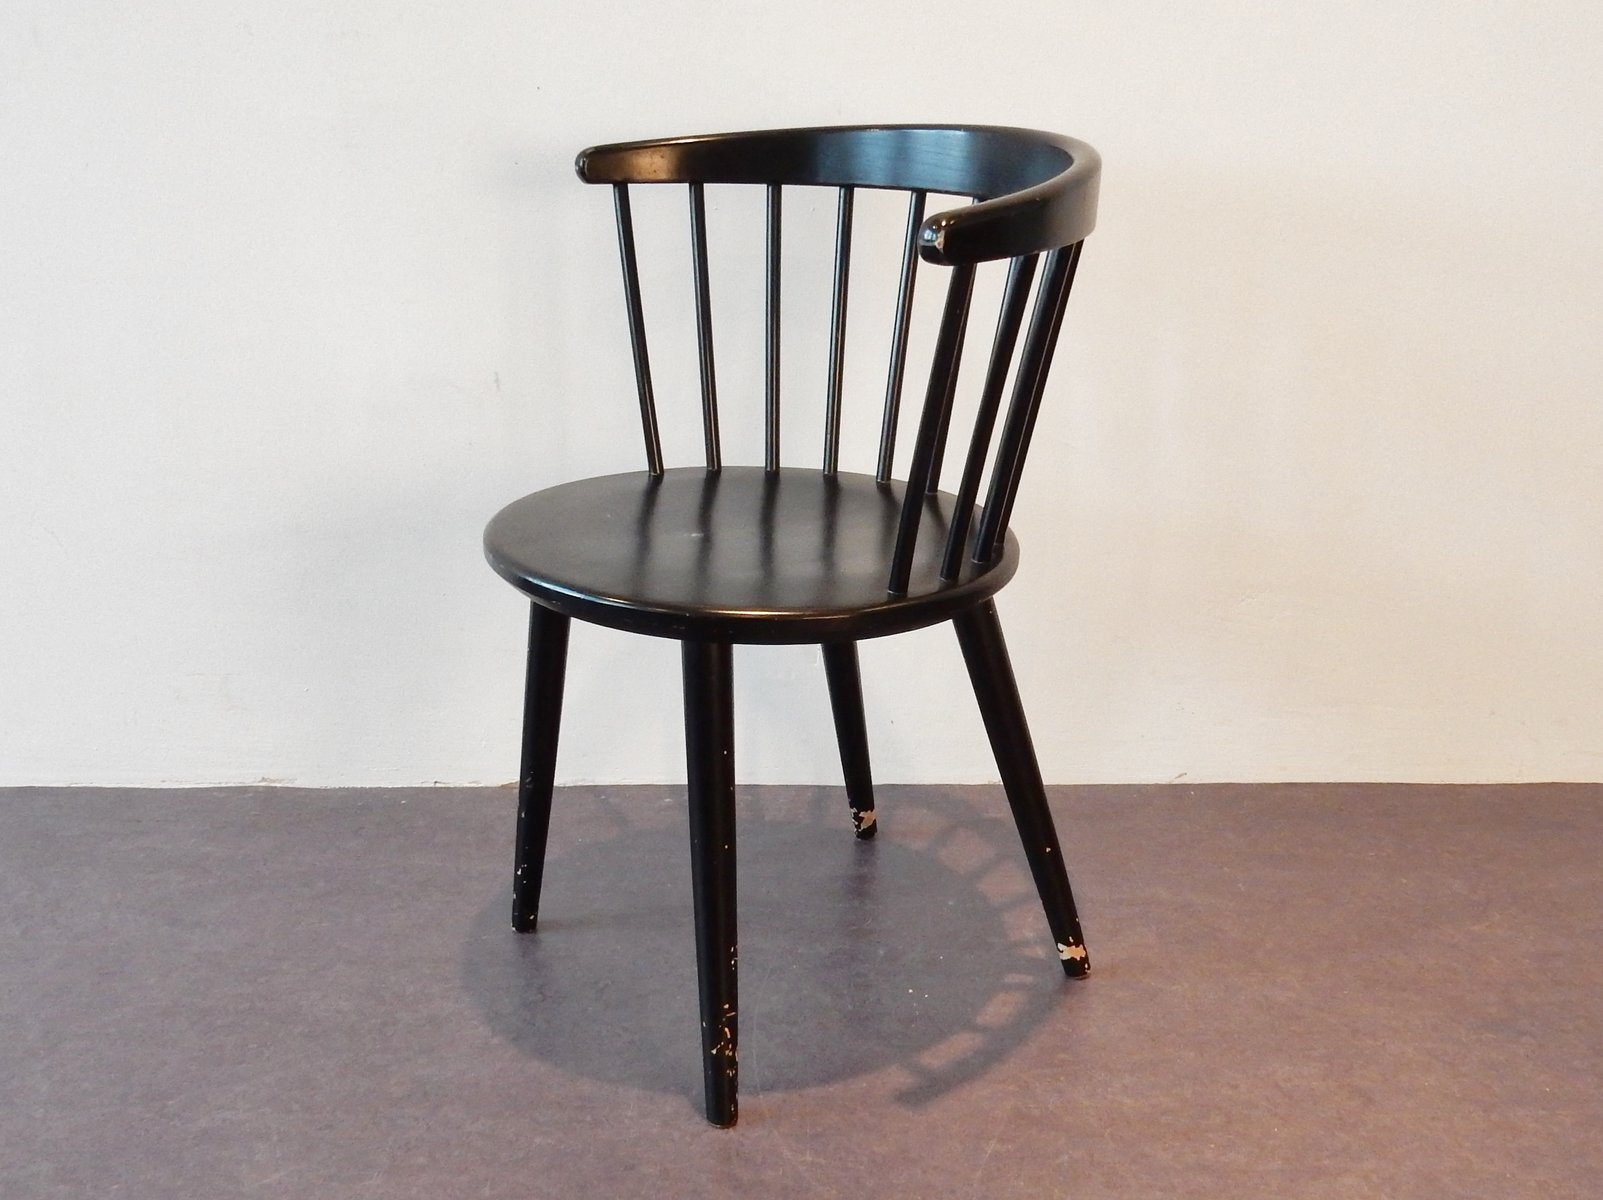 Vintage Danish Side Chair by Yngve Ekstrom for Nesto 1960s for